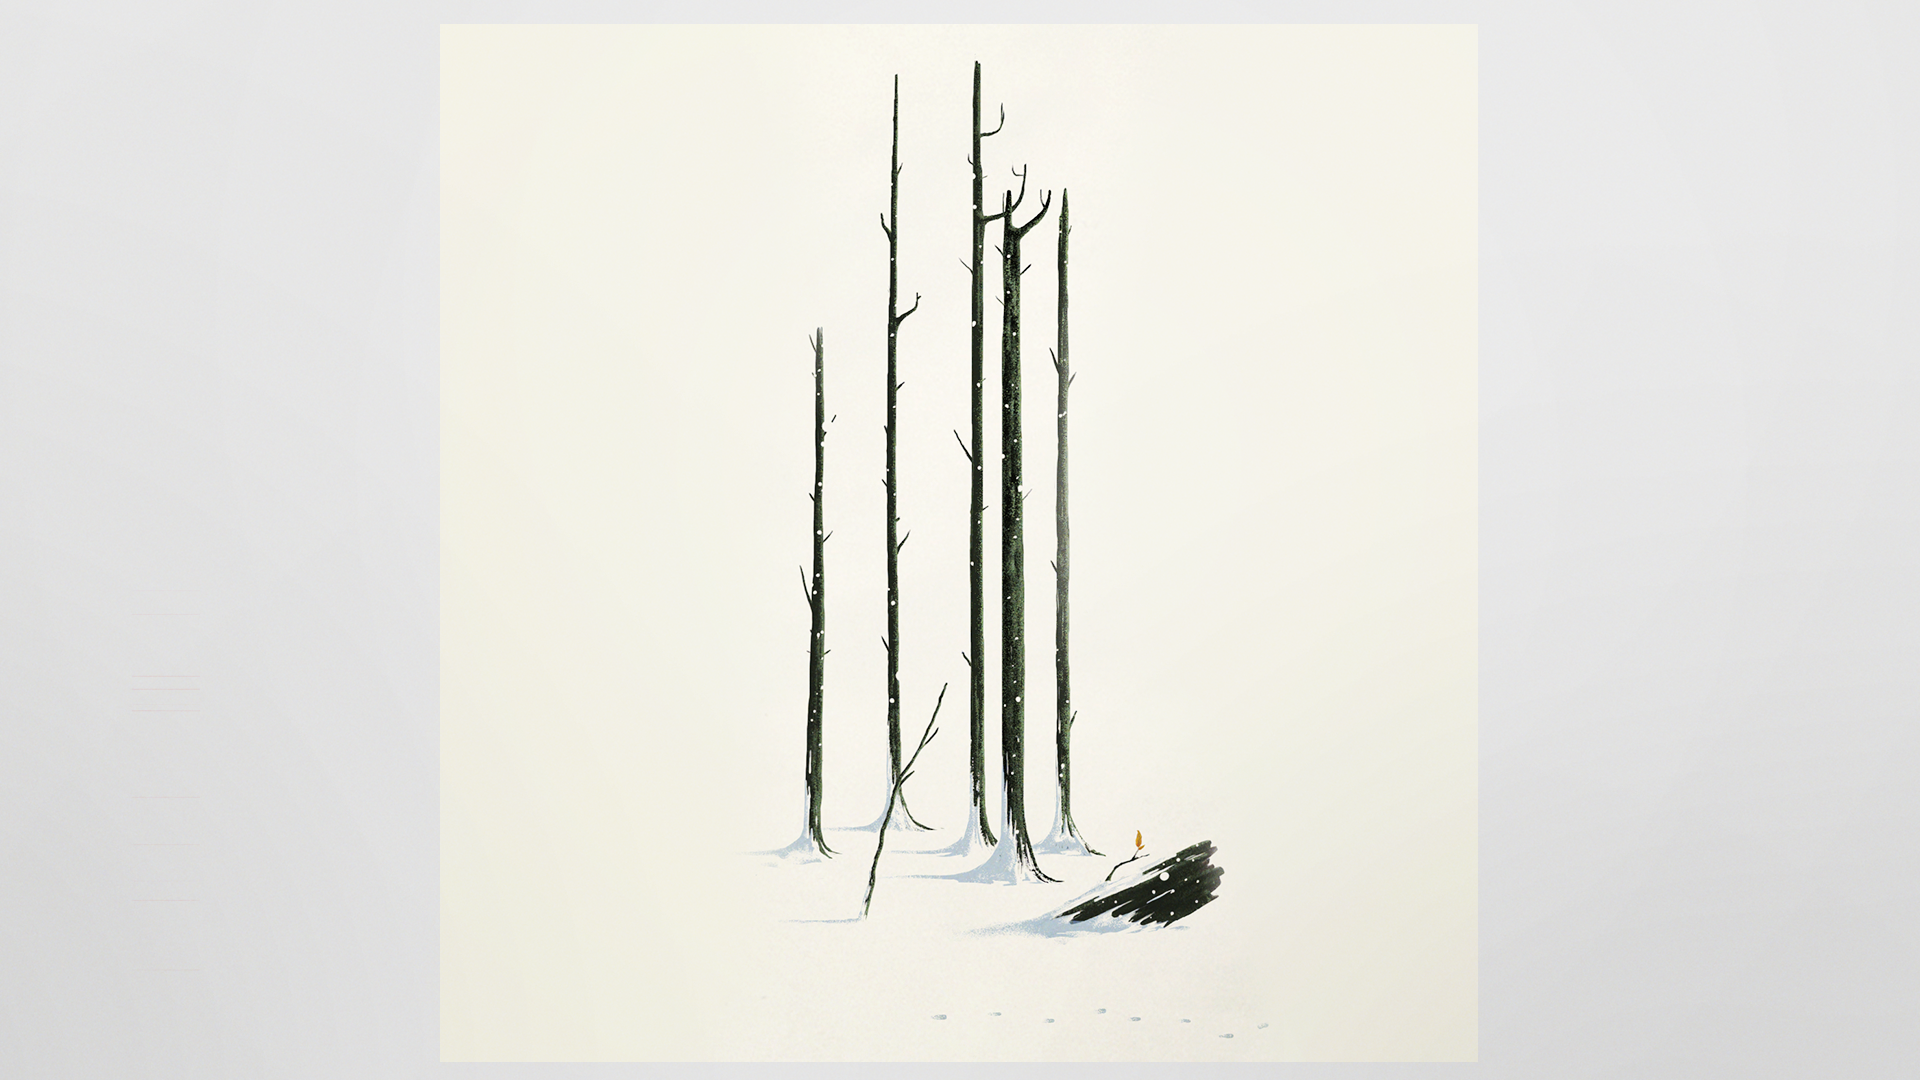 trees_169_2.png